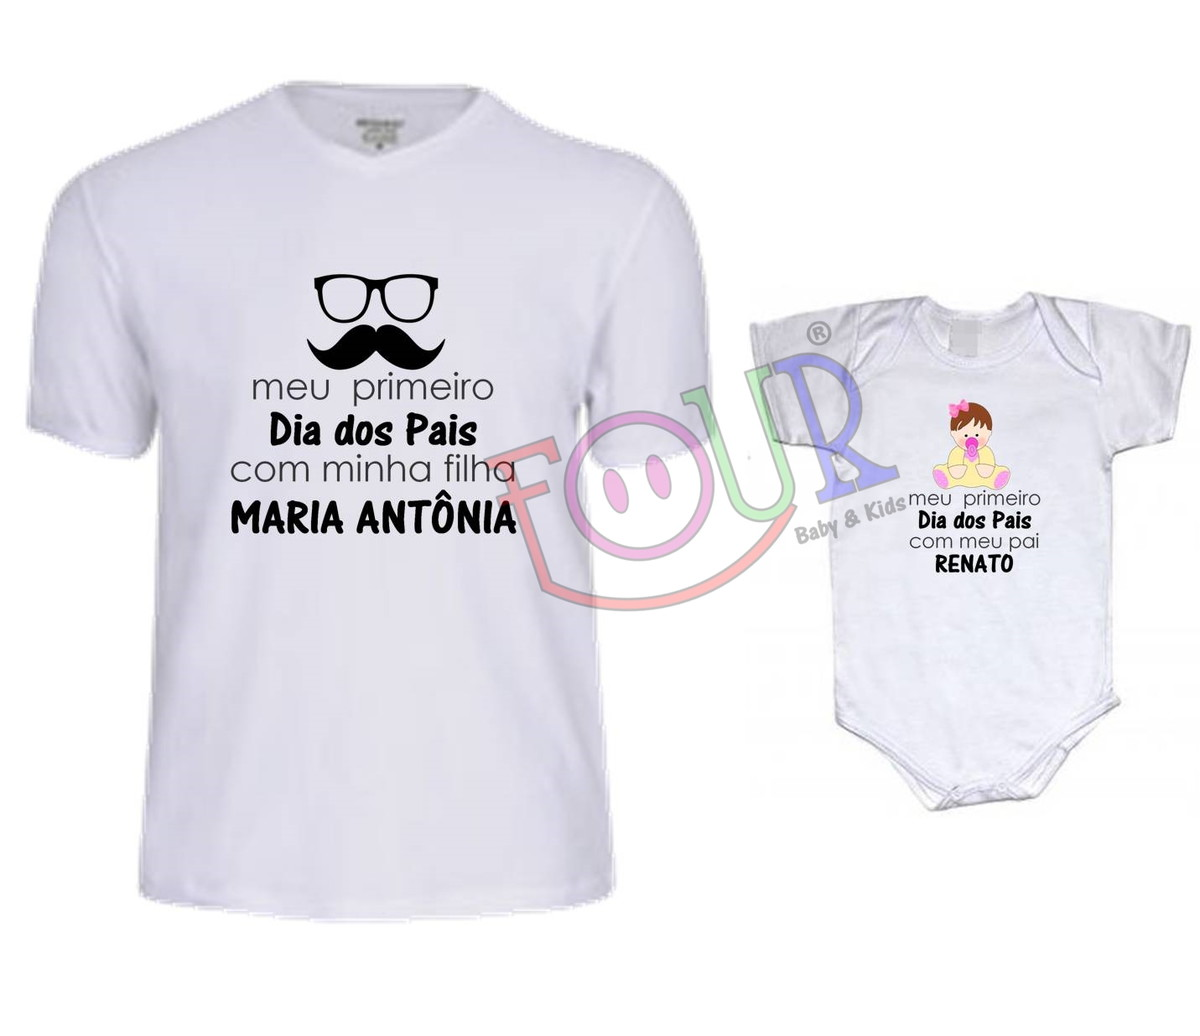 6d0c641fb2a6db Kit Camiseta e body Pai/Filha DP17 Dia dos Pais